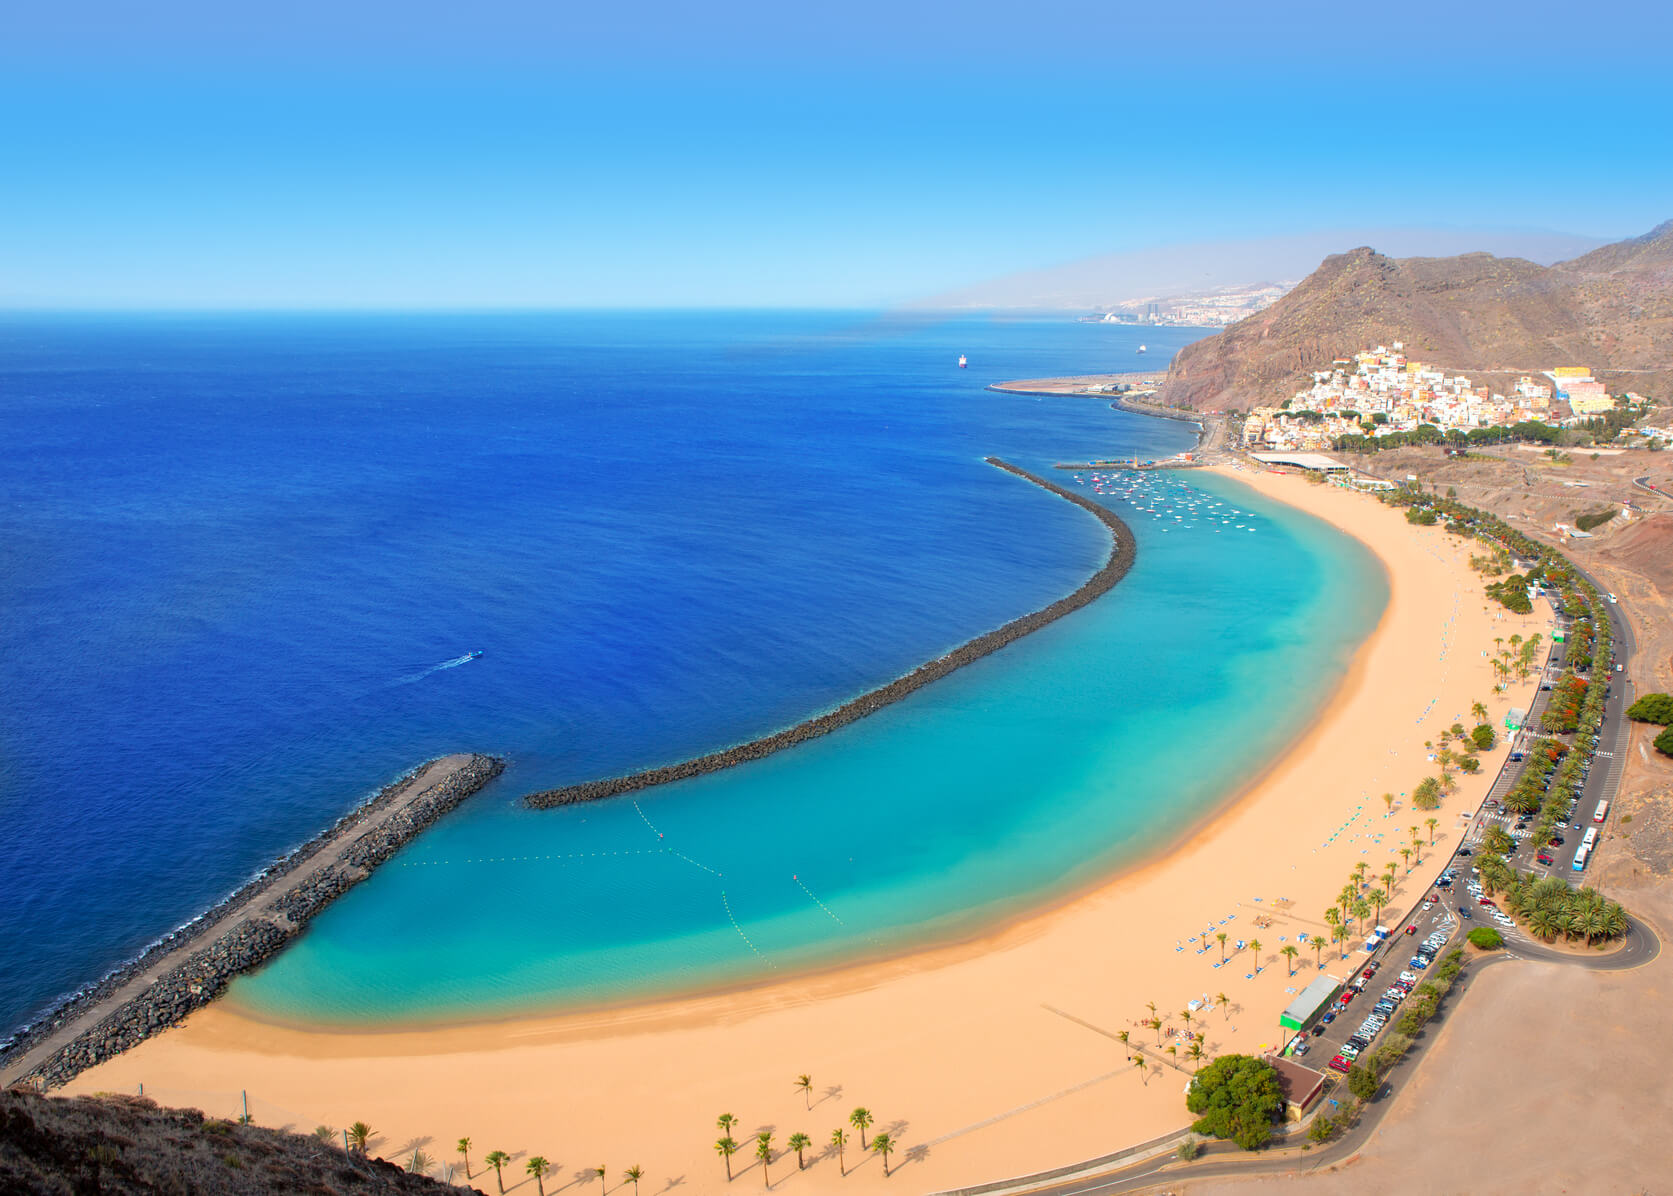 🔥 Chicago to the Canary Islands for only $205 roundtrip (Apr-May dates)